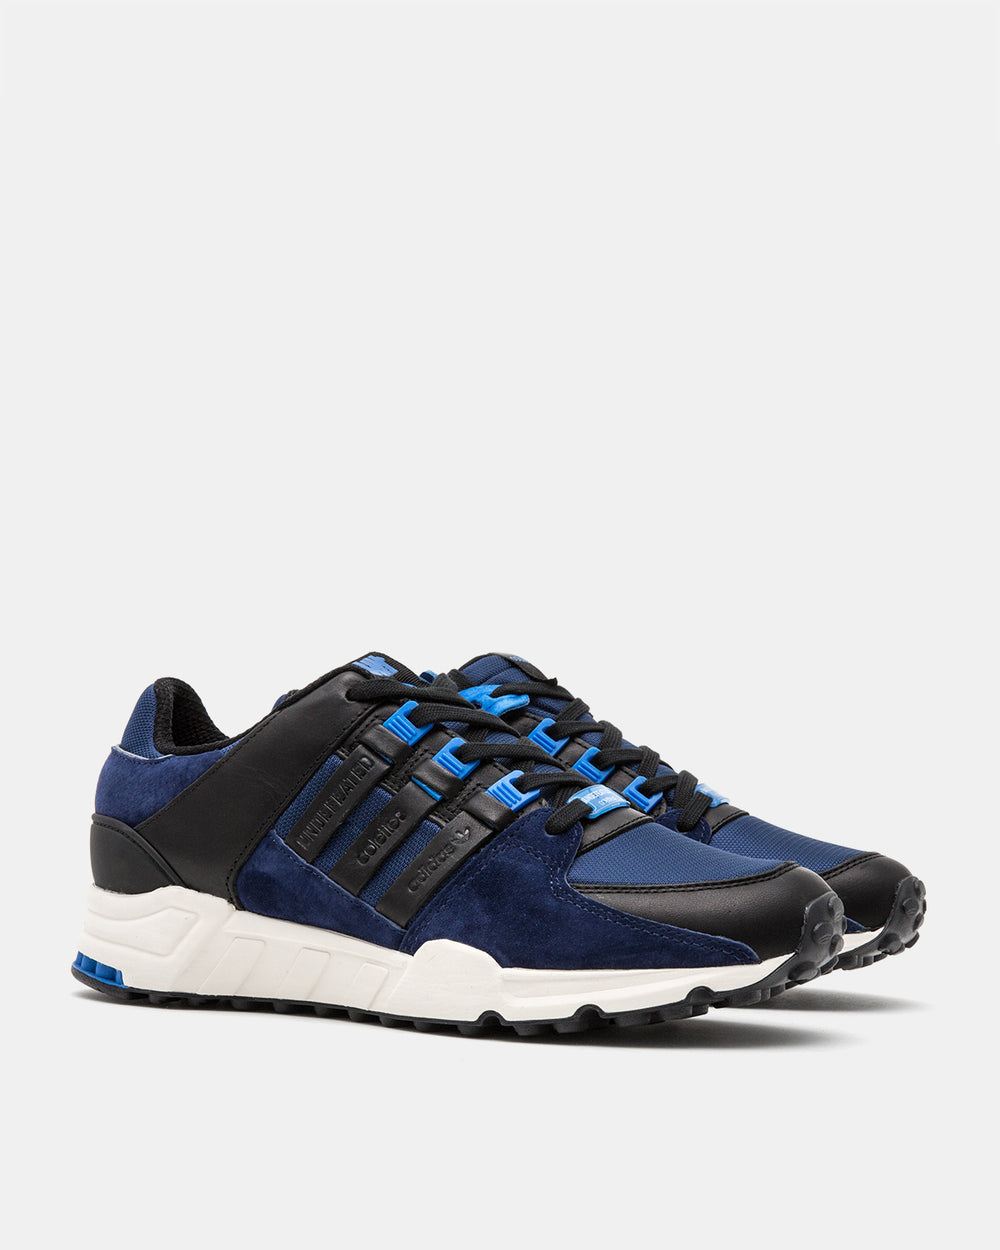 adidas - Undefeated x Colette EQT Support S.E. (Dark Blue)